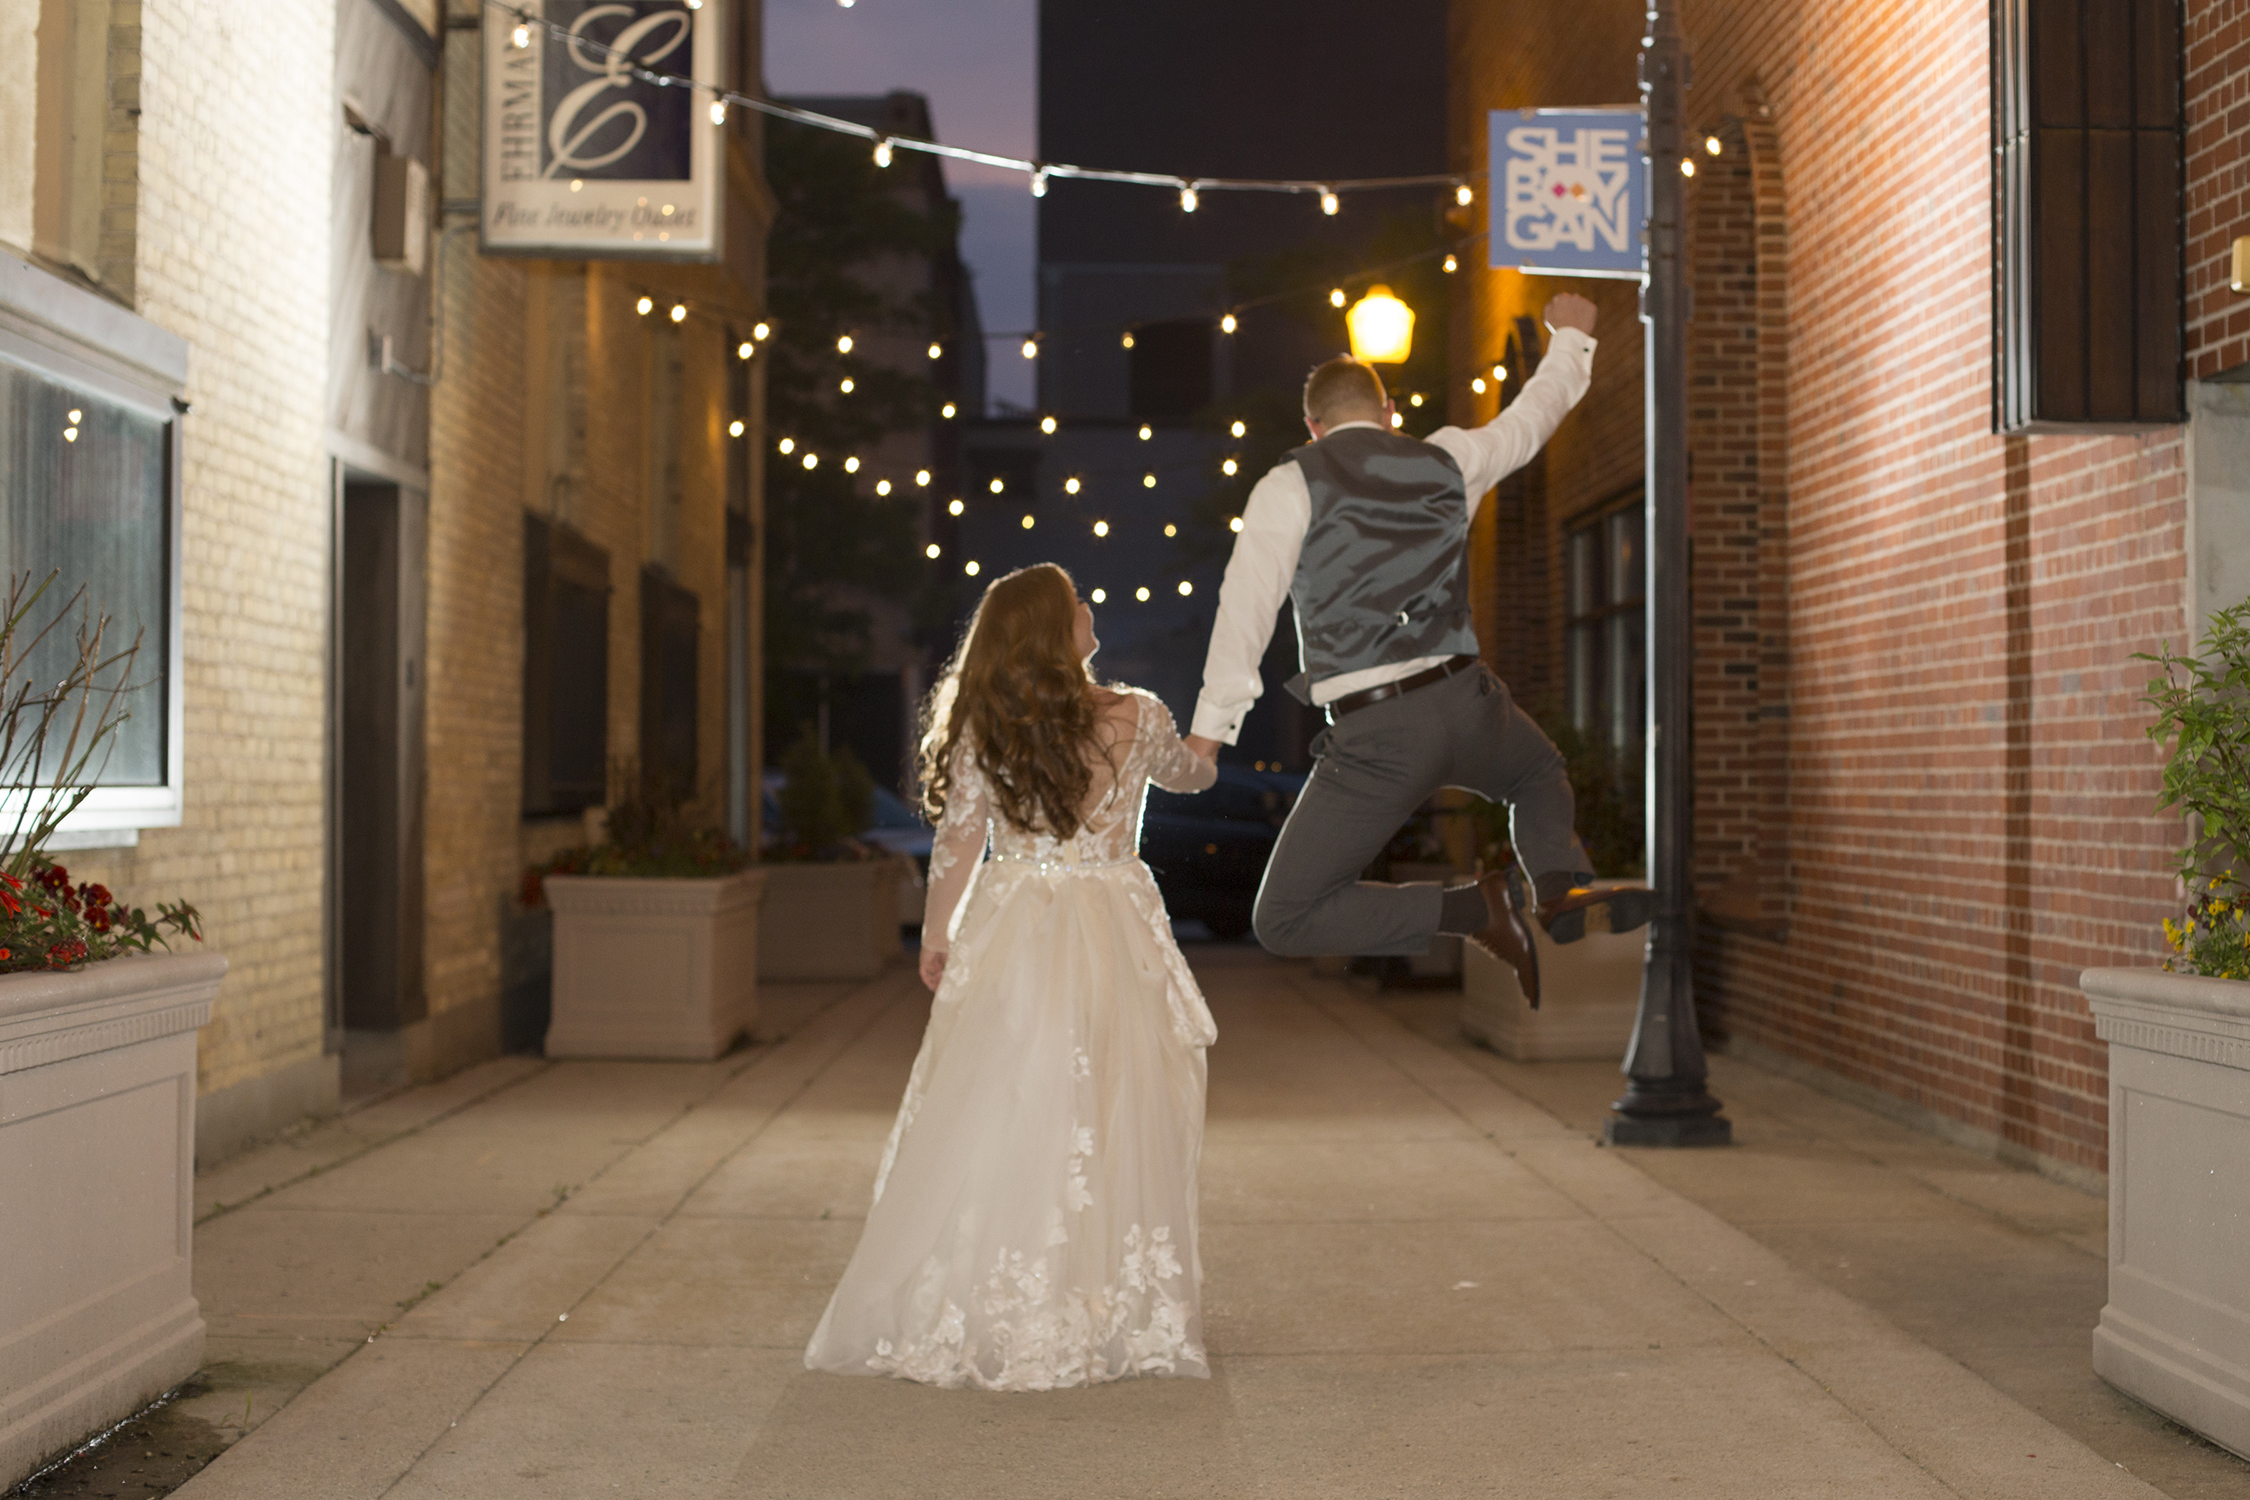 Wedding Collections - Collections include: - Complimentary Engagement Session - Wedding Day Photography (hours vary by collection, begins at 6 hours)- All high resolution photos with print release - Private Online Viewing GalleryCollections begin at $2000